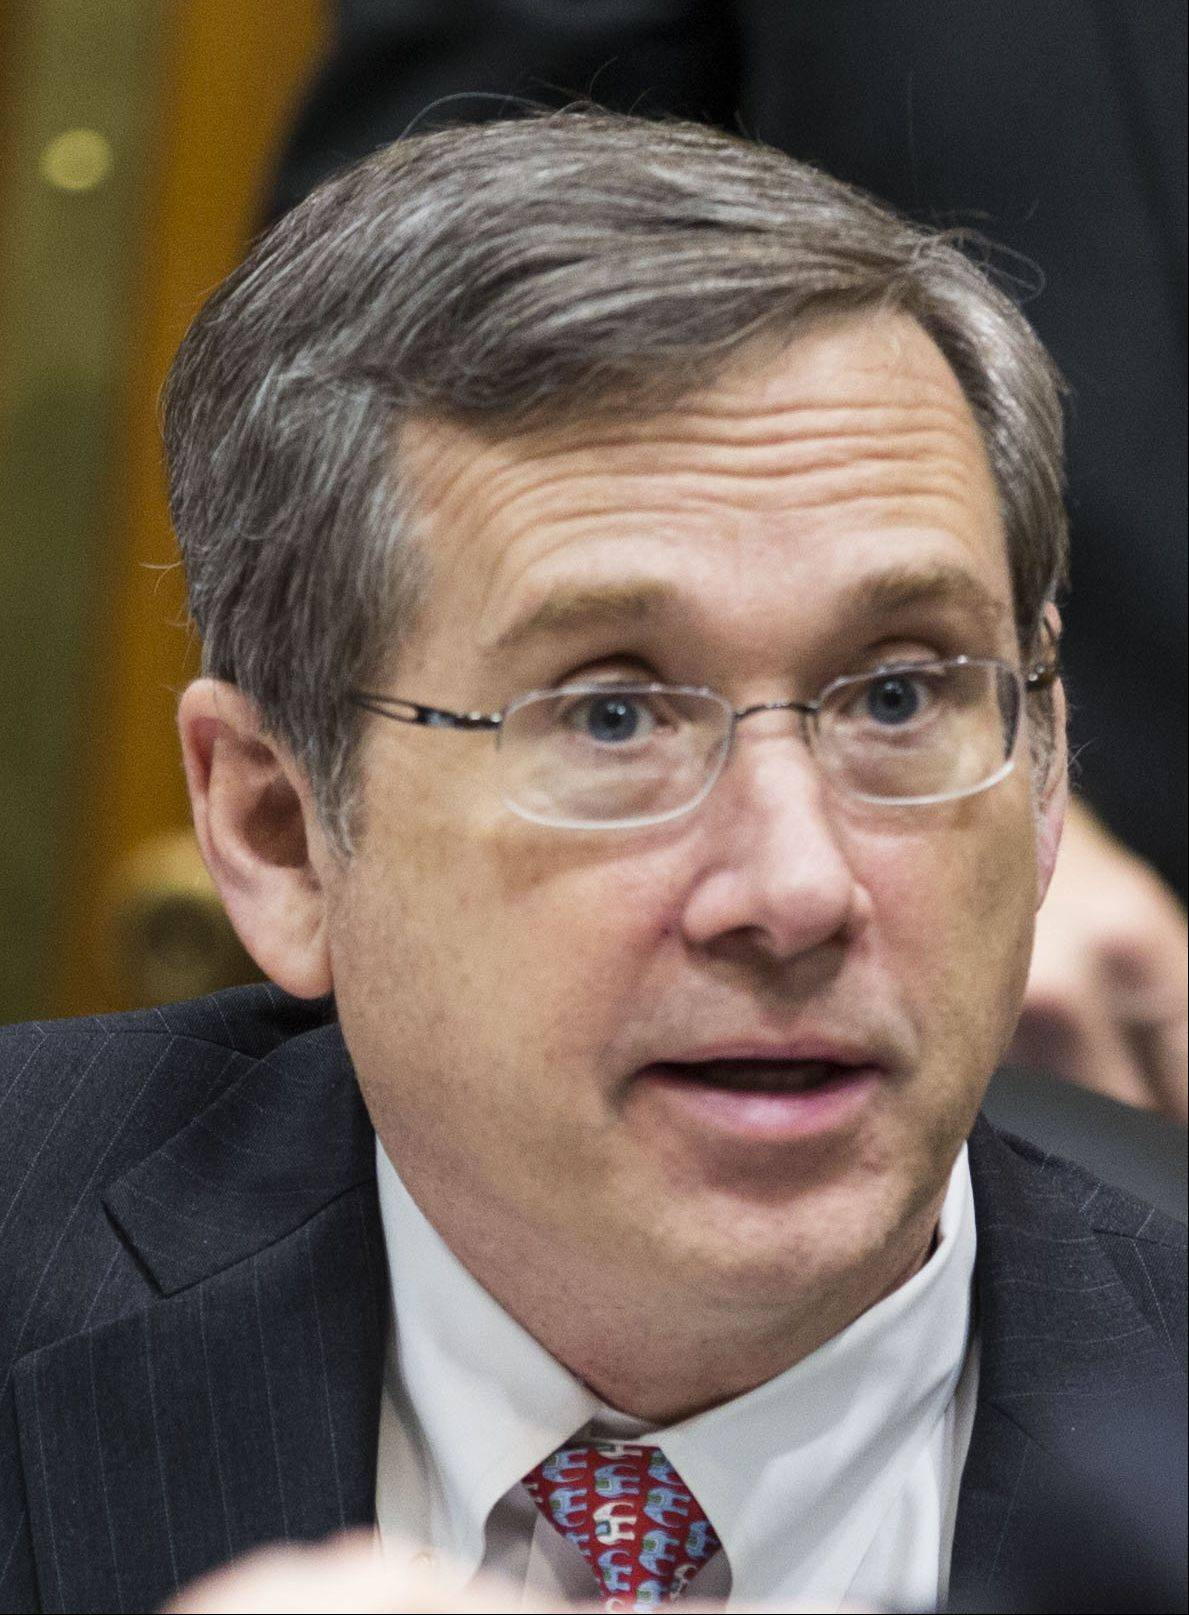 Senator Mark Kirk. 2013 photo